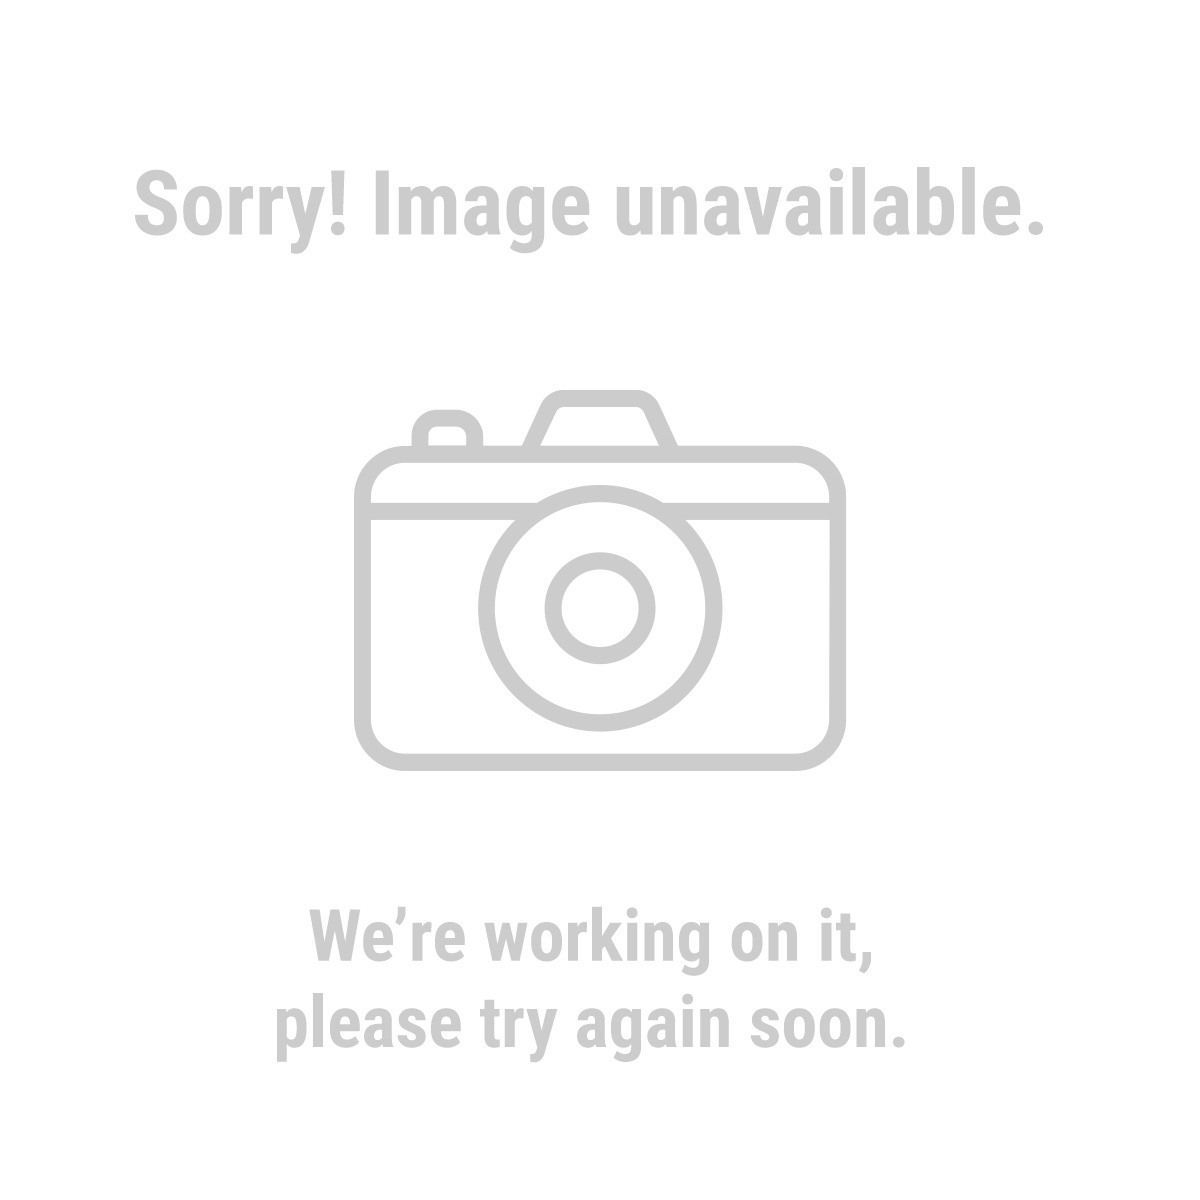 Pittsburgh Motorcycle 69995 1500 Lb. Capacity ATV/Motorcycle Lift